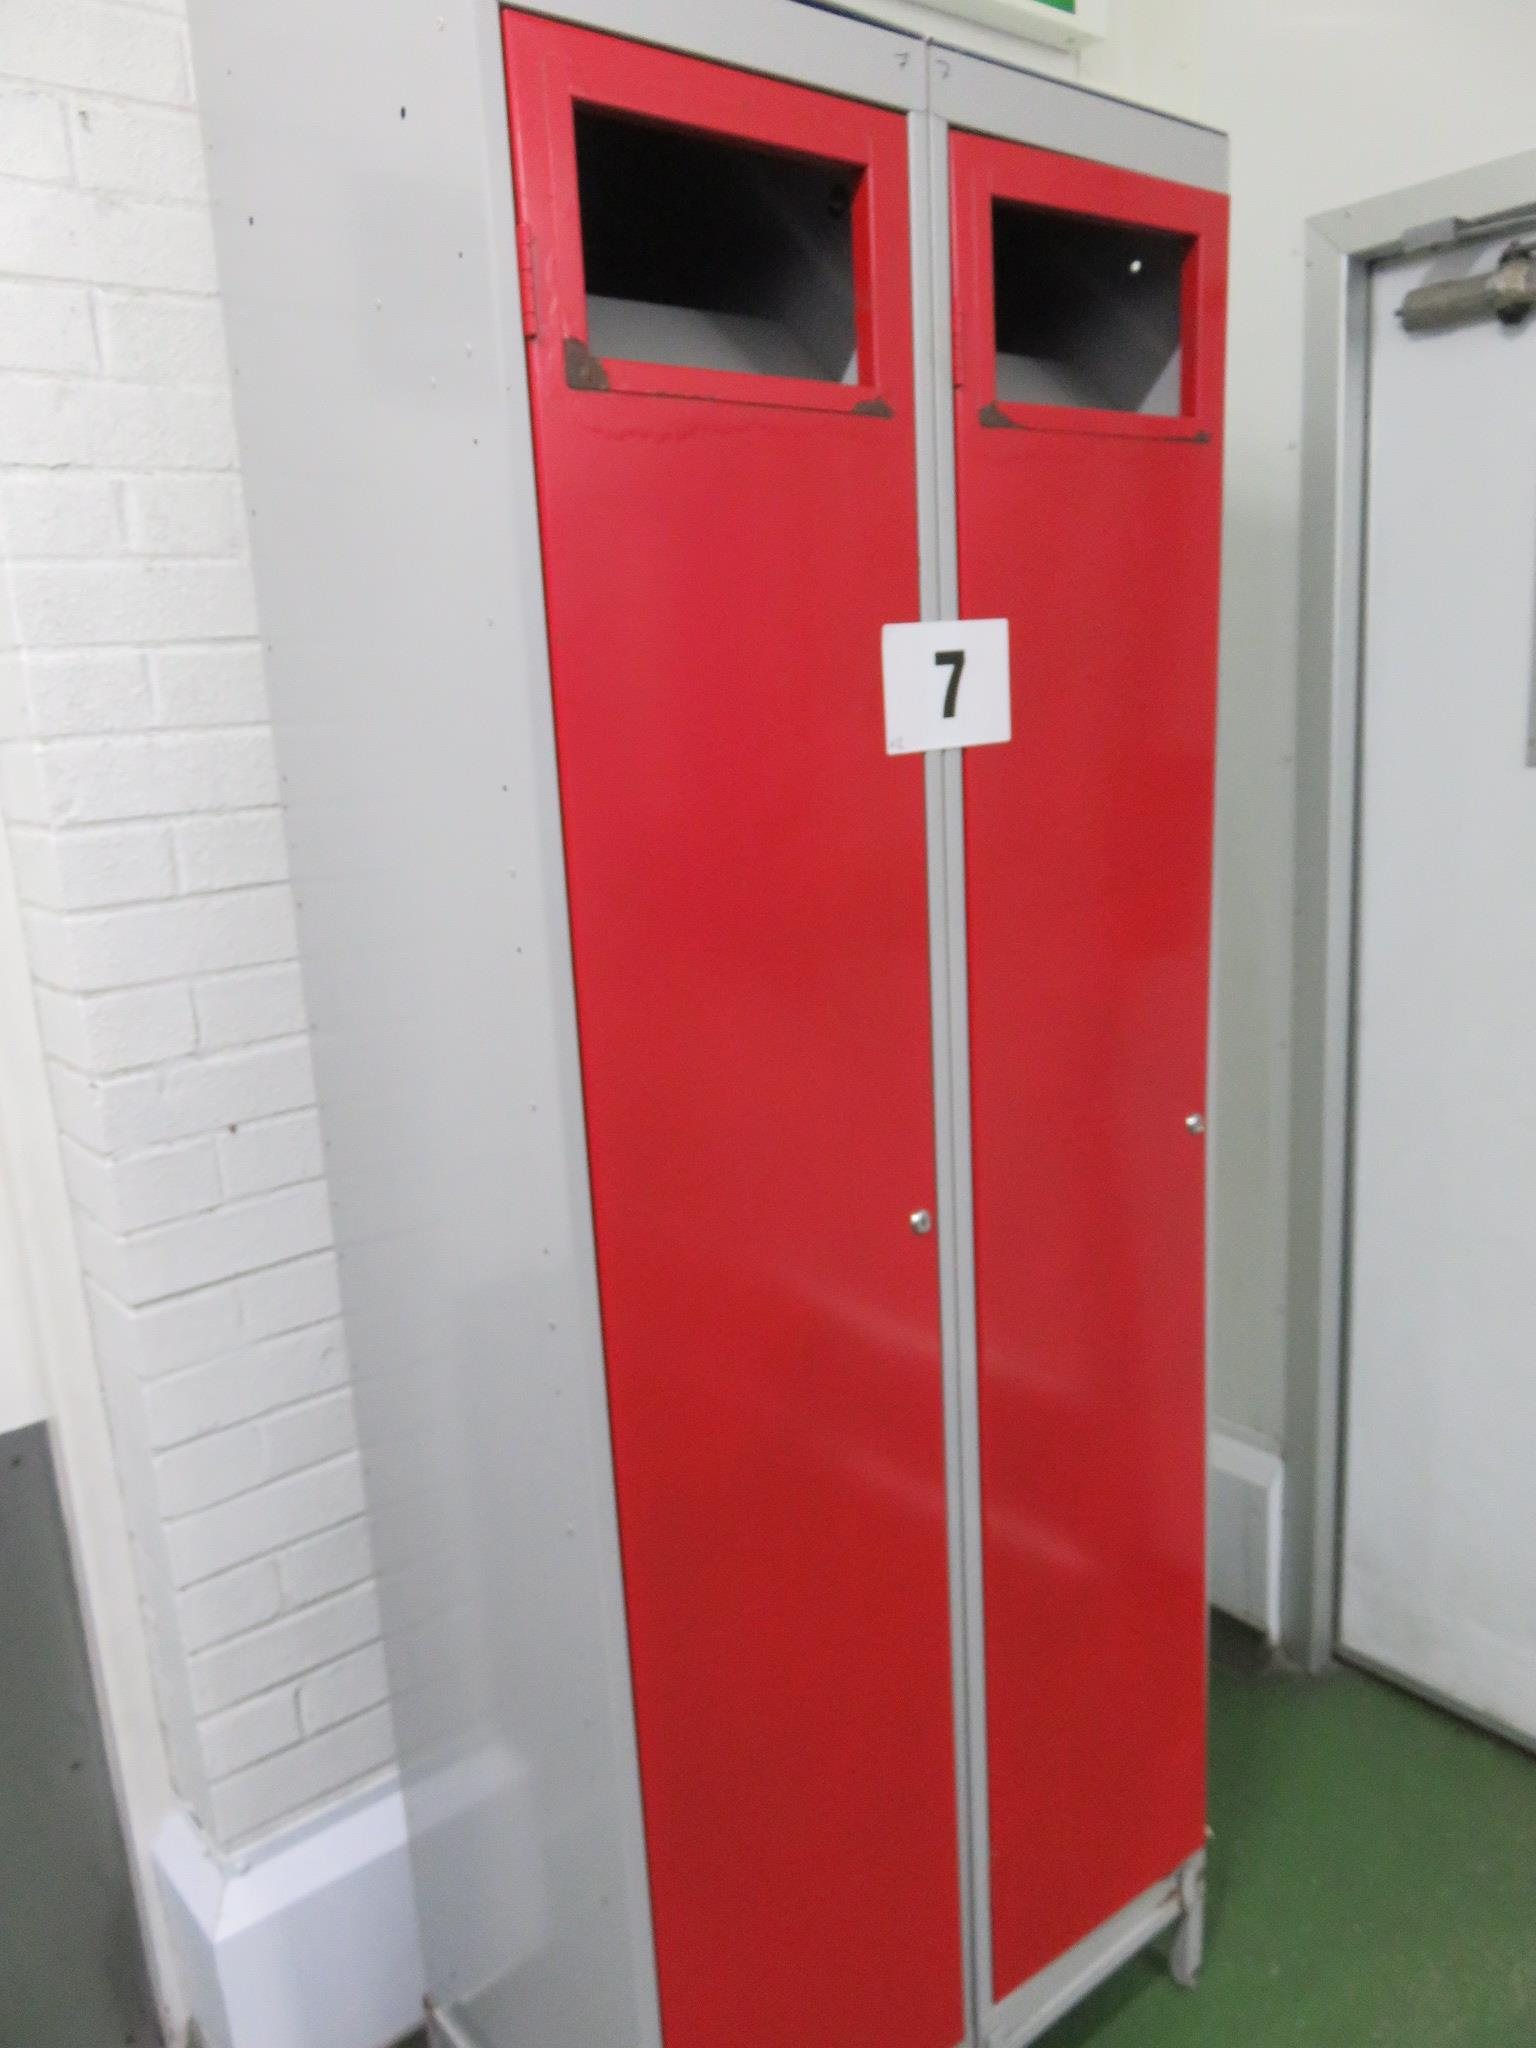 Lot 7 - 2 x Laundry Lockers. Lift out £10